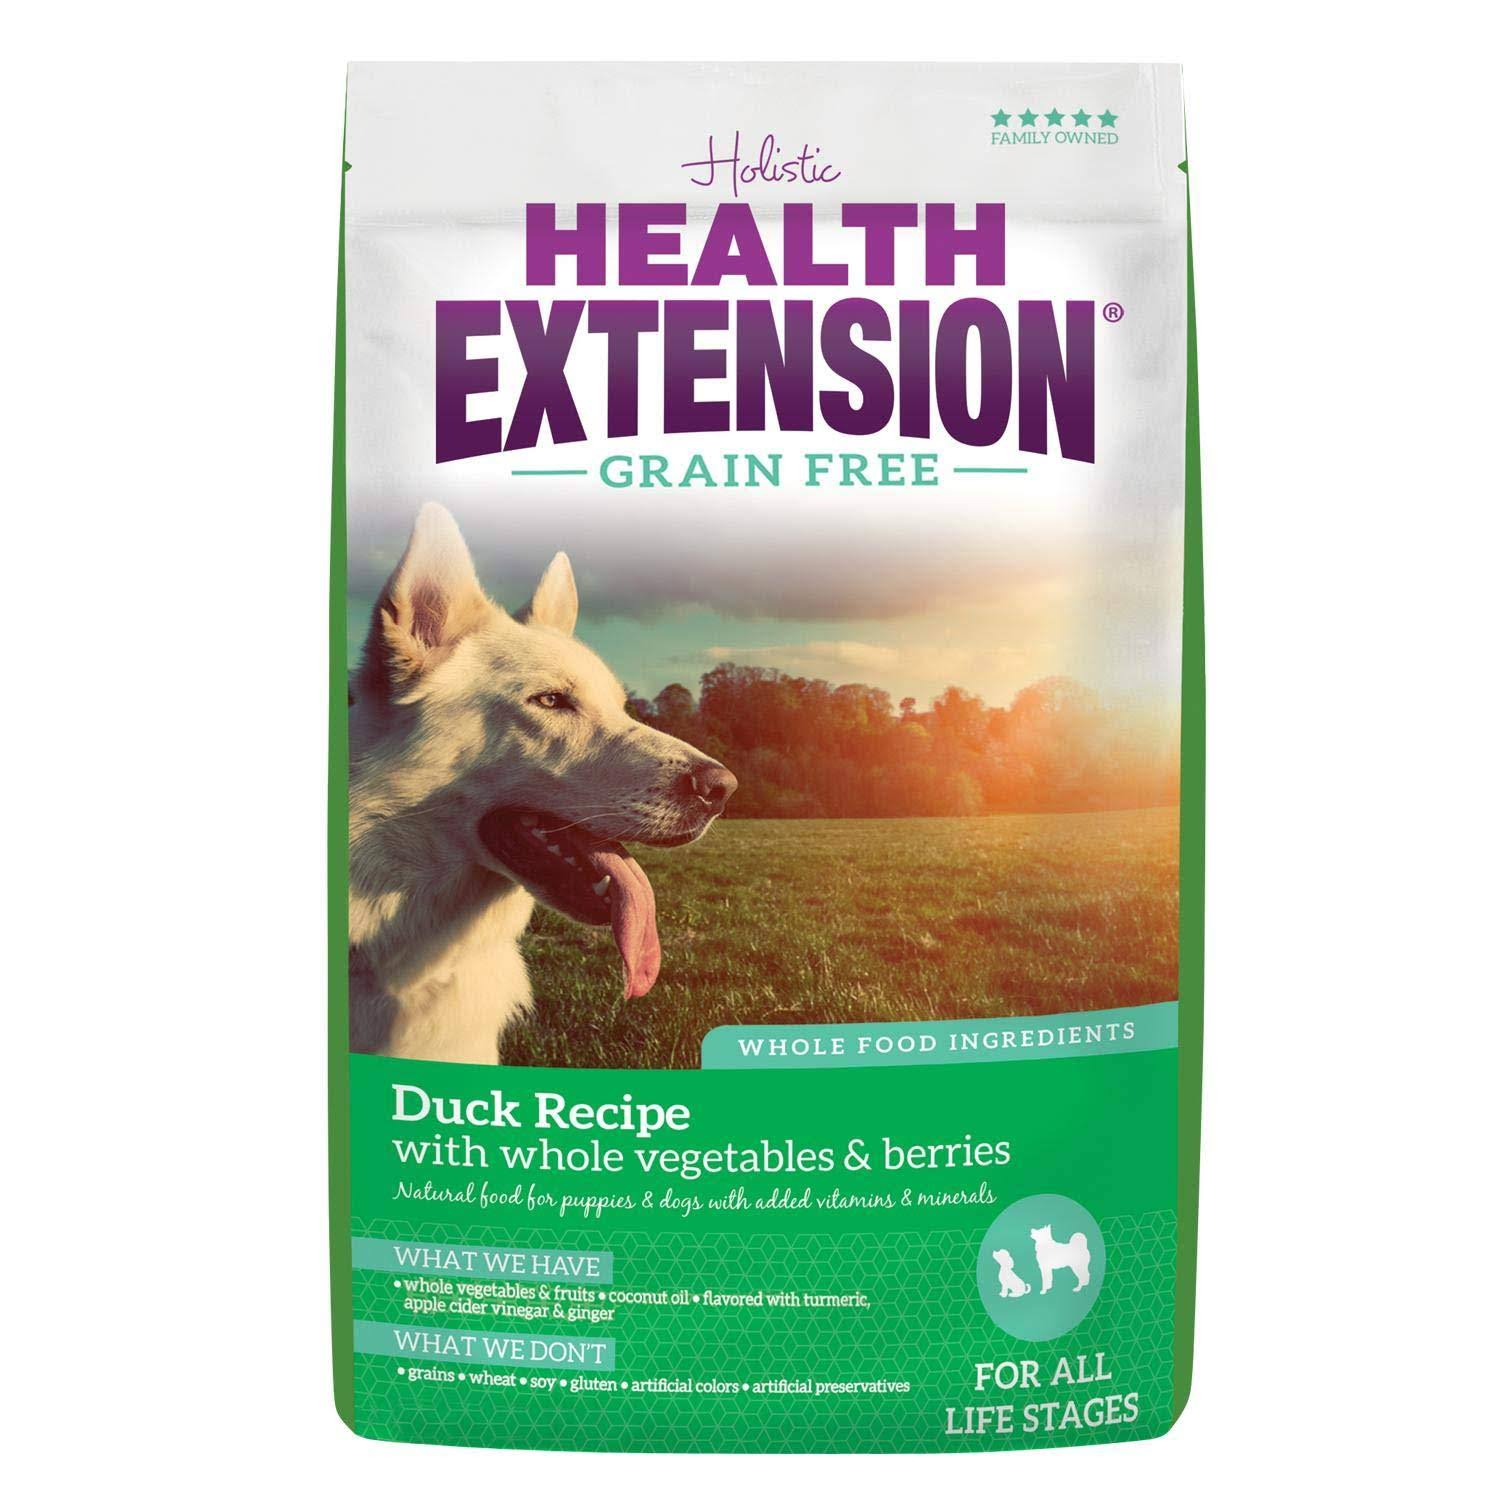 Health Extension 587166 Grain Free Pet Food Formula - Duck and Chickpea, 10lbs